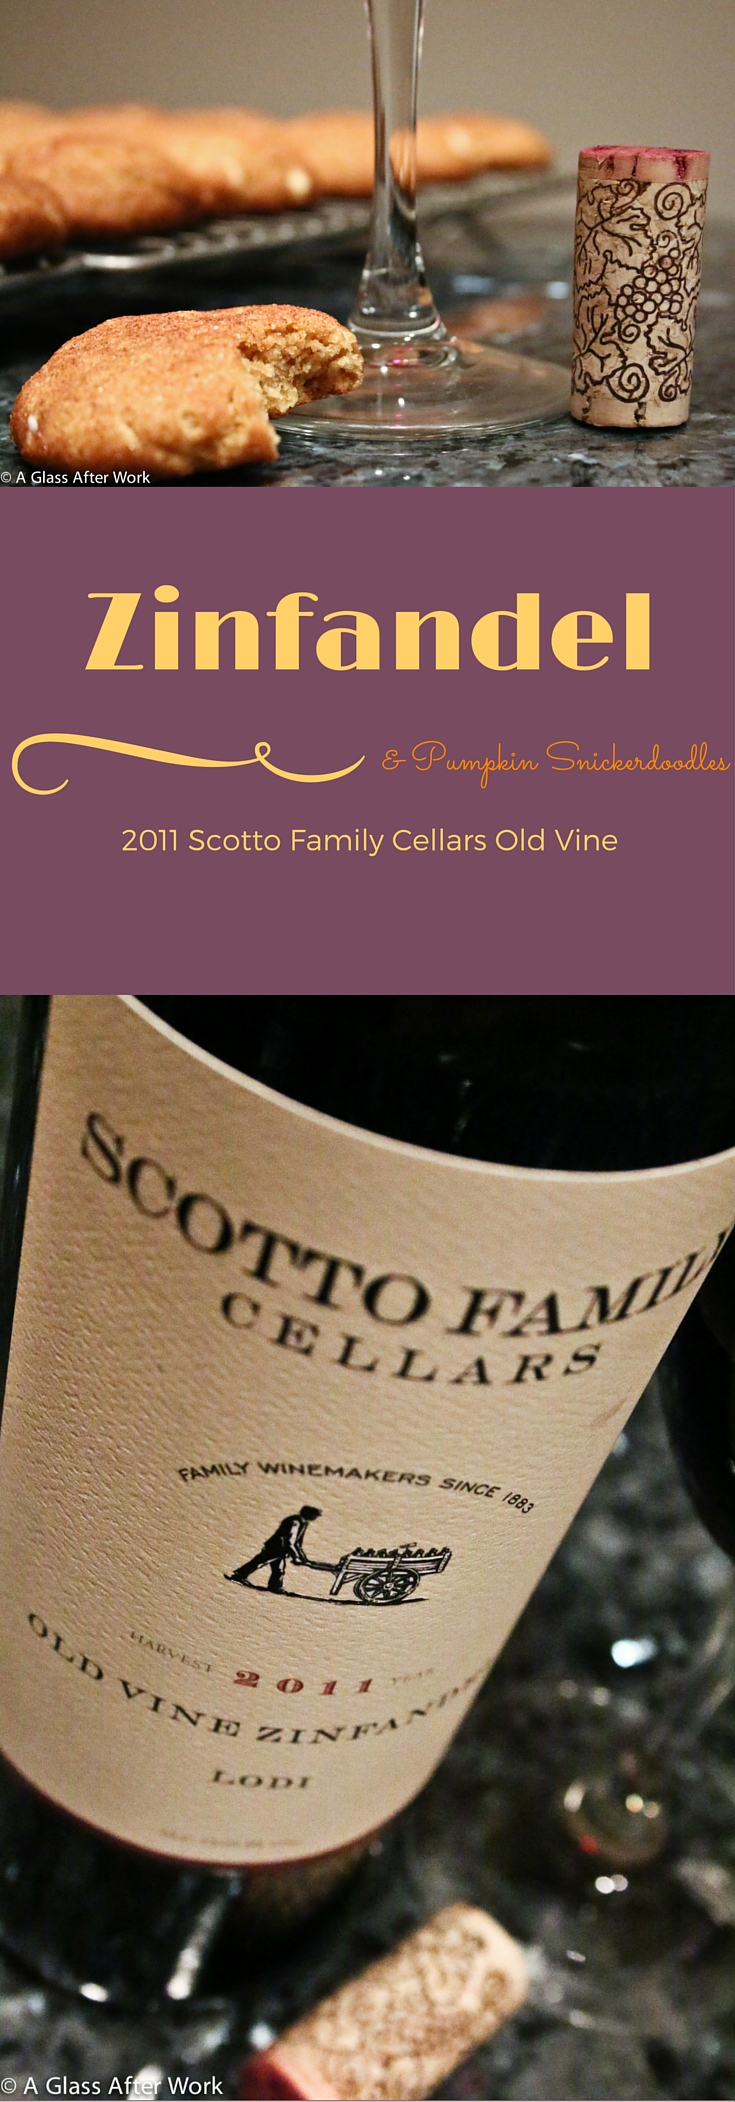 2011 Scotto Cellars Old Vine Zinfandel & a Pumpkin Snickerdoodle recipe -- At $15, this full body red wine from Lodi, California has a great quality-price ratio. It's food-friendly and luscious, making it easy to drink any time of year. Ratings 3.5 out of 5 | AGlassAfterWork.com